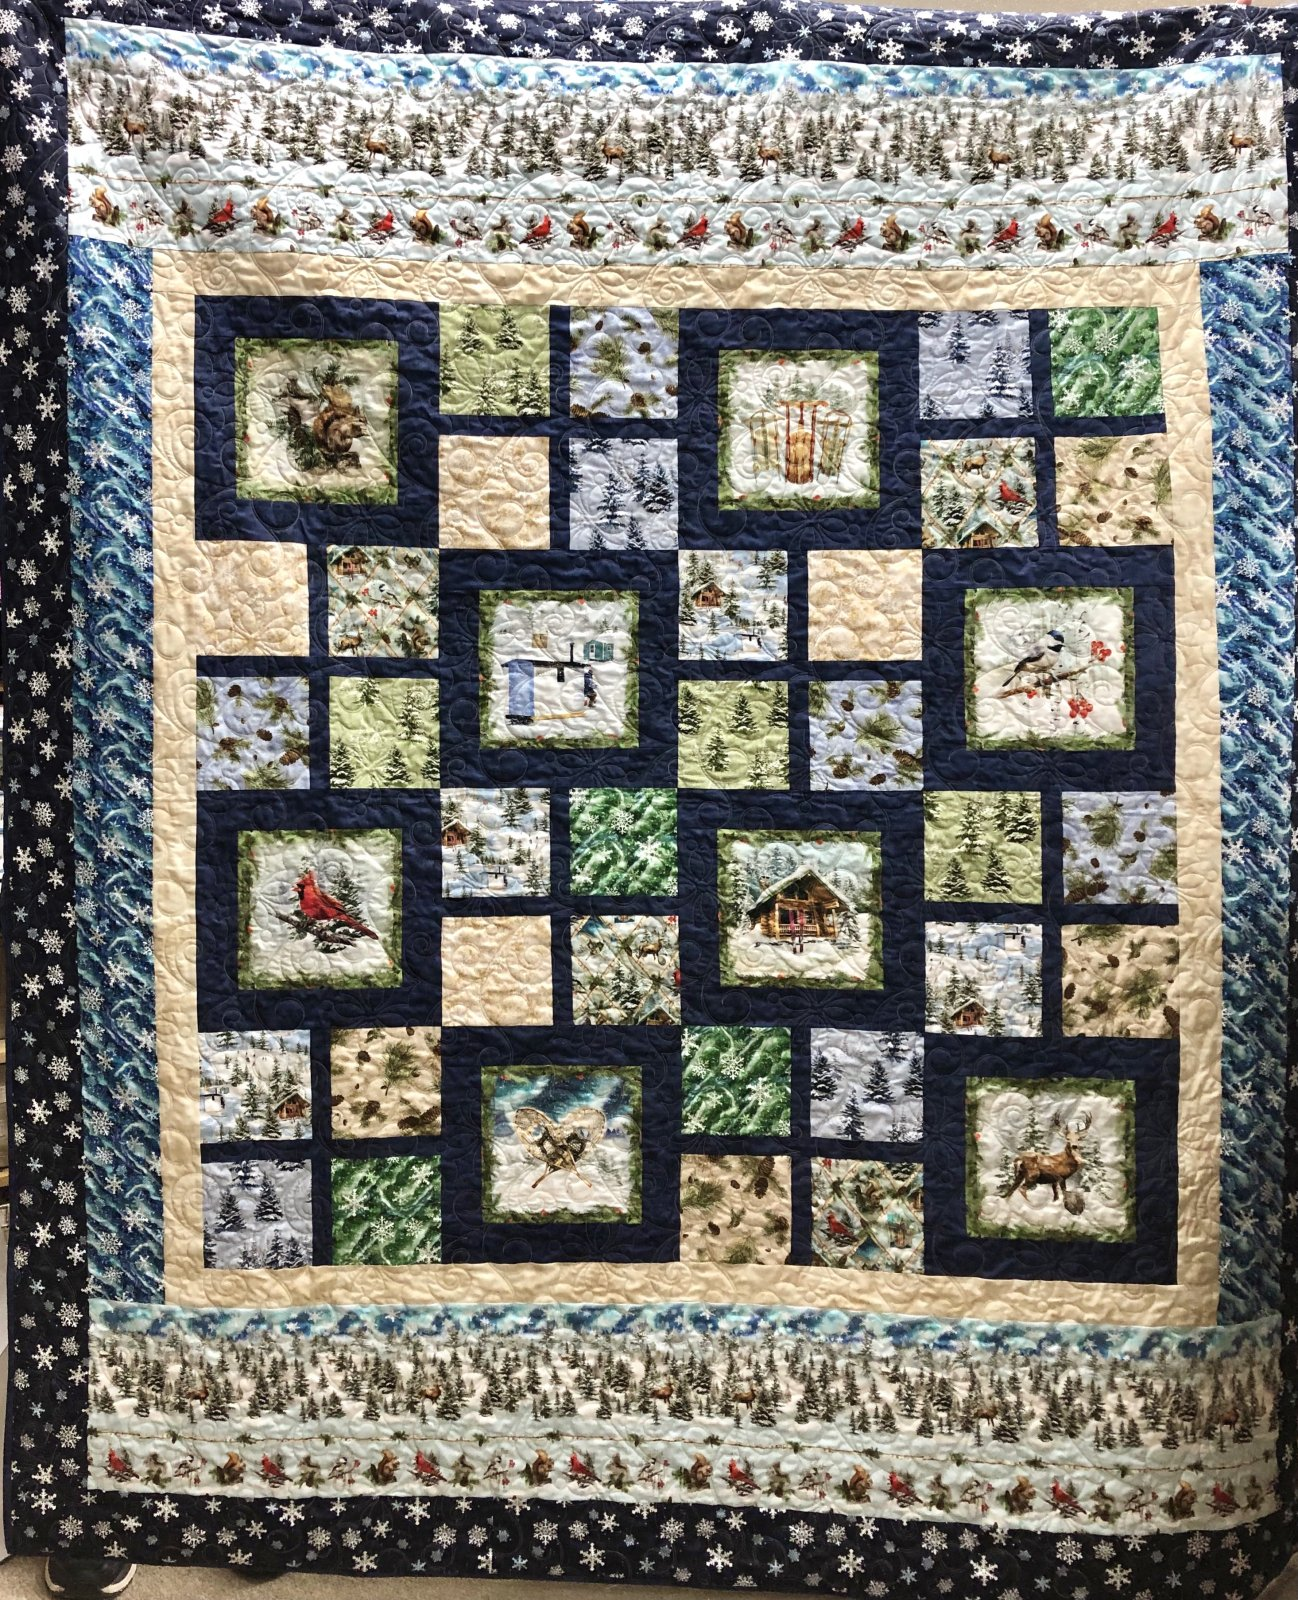 Wrapped in Blue - Quilt MN 2021 68.5 x 80.5